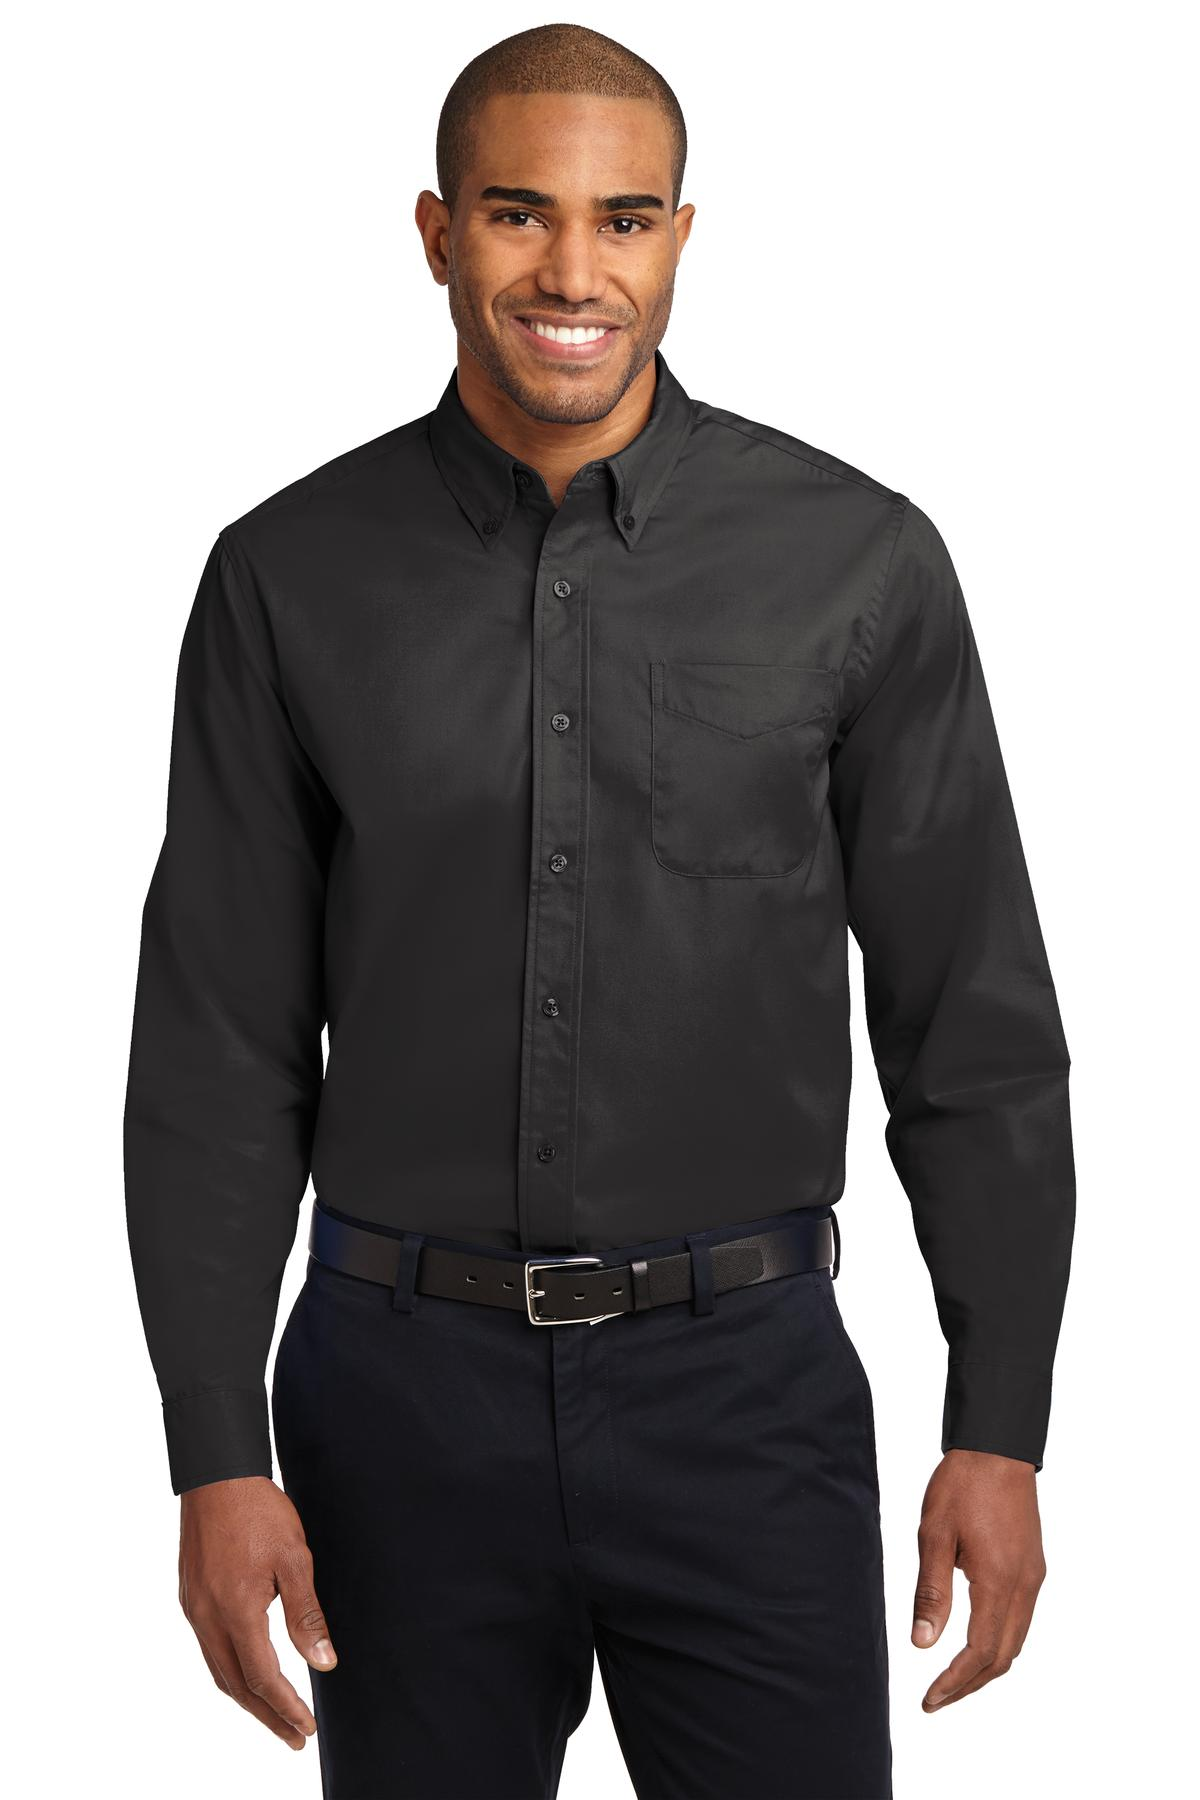 Port Authority ®  Long Sleeve Easy Care Shirt.  S608 - Black/ Light Stone